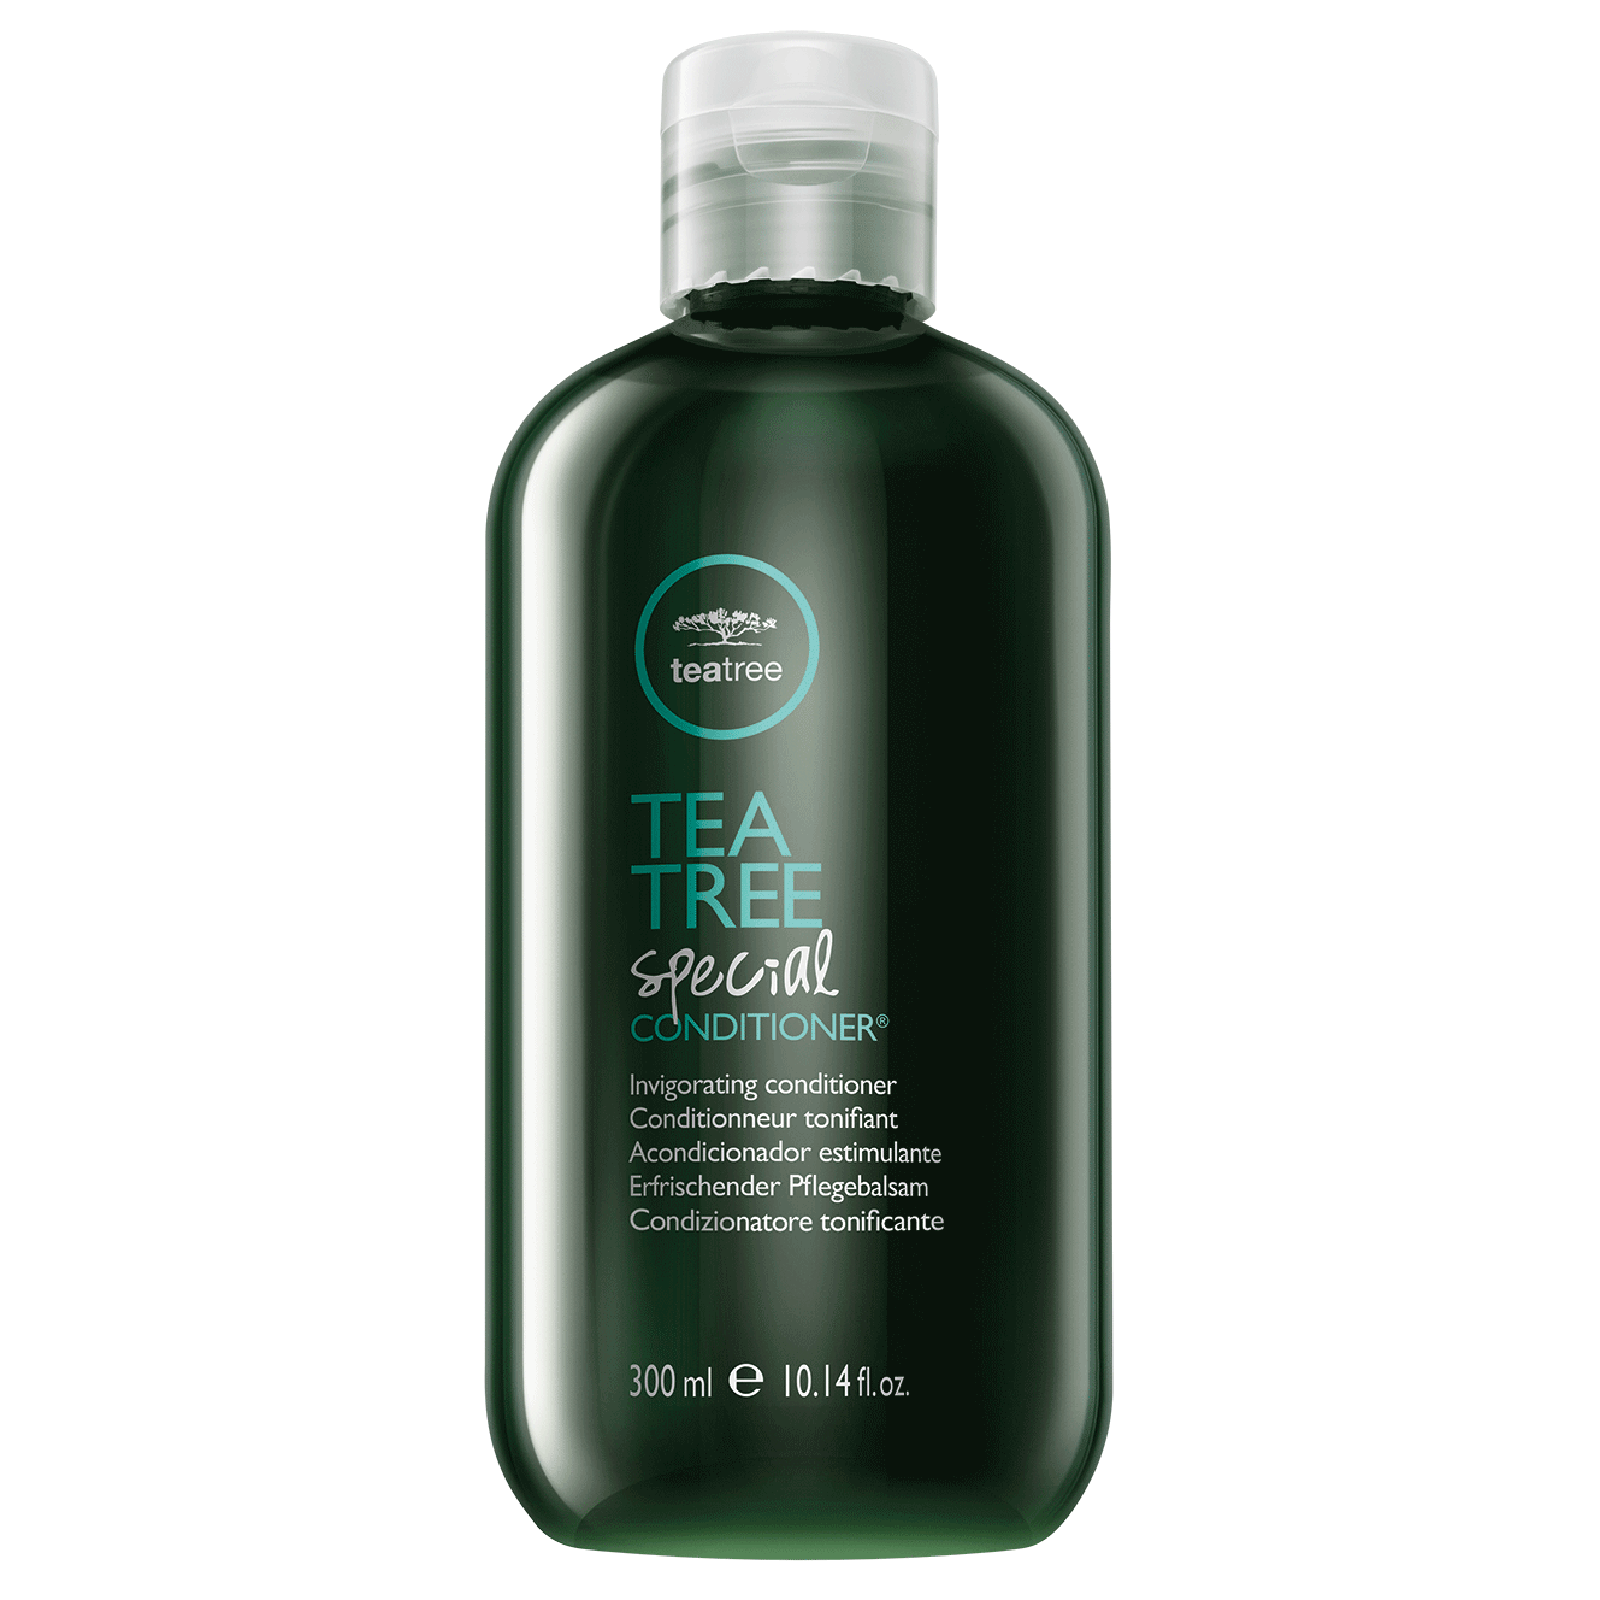 Tea Tree - Special Conditioner